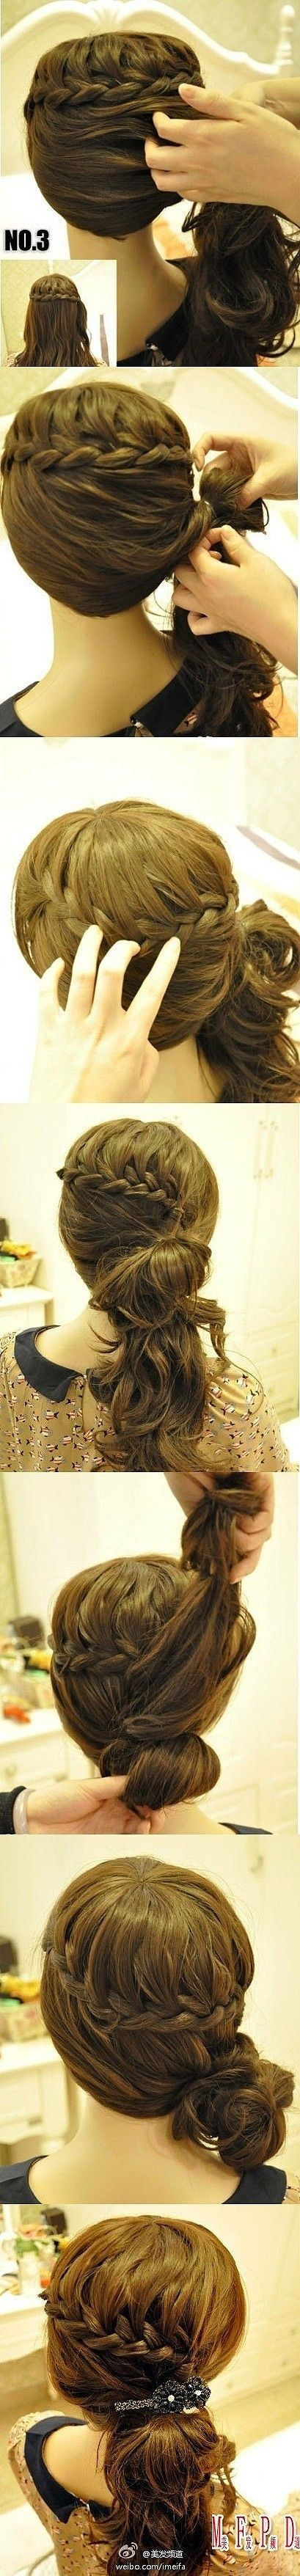 Cute braided side-pony look! Minus the black bedazzling.